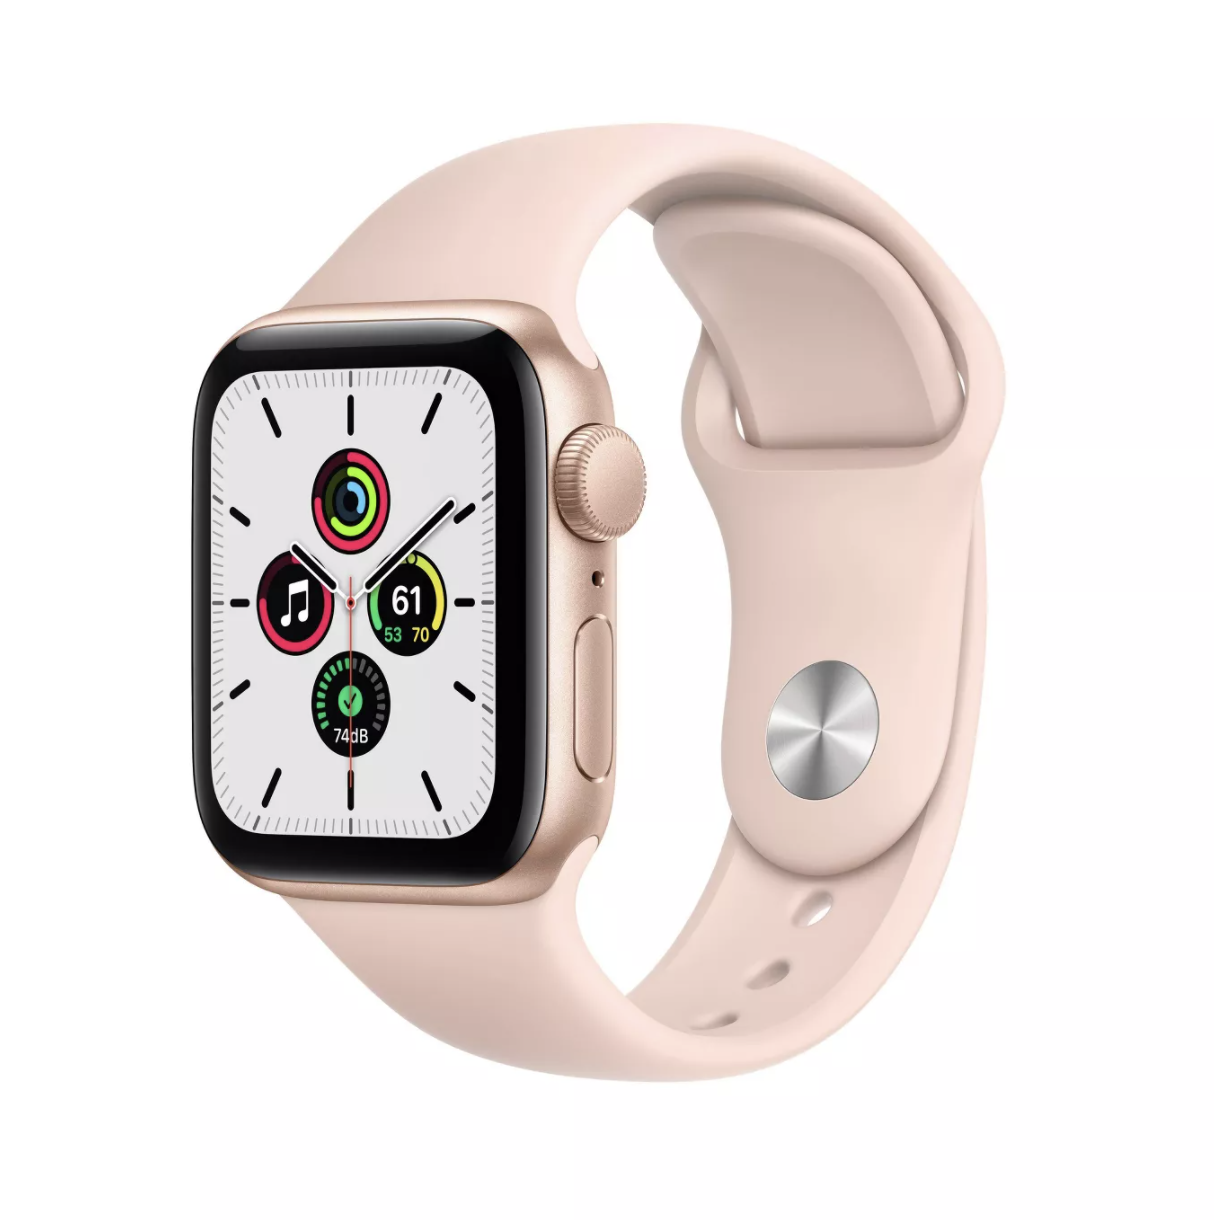 Rose gold Apple Watch with matching pink band